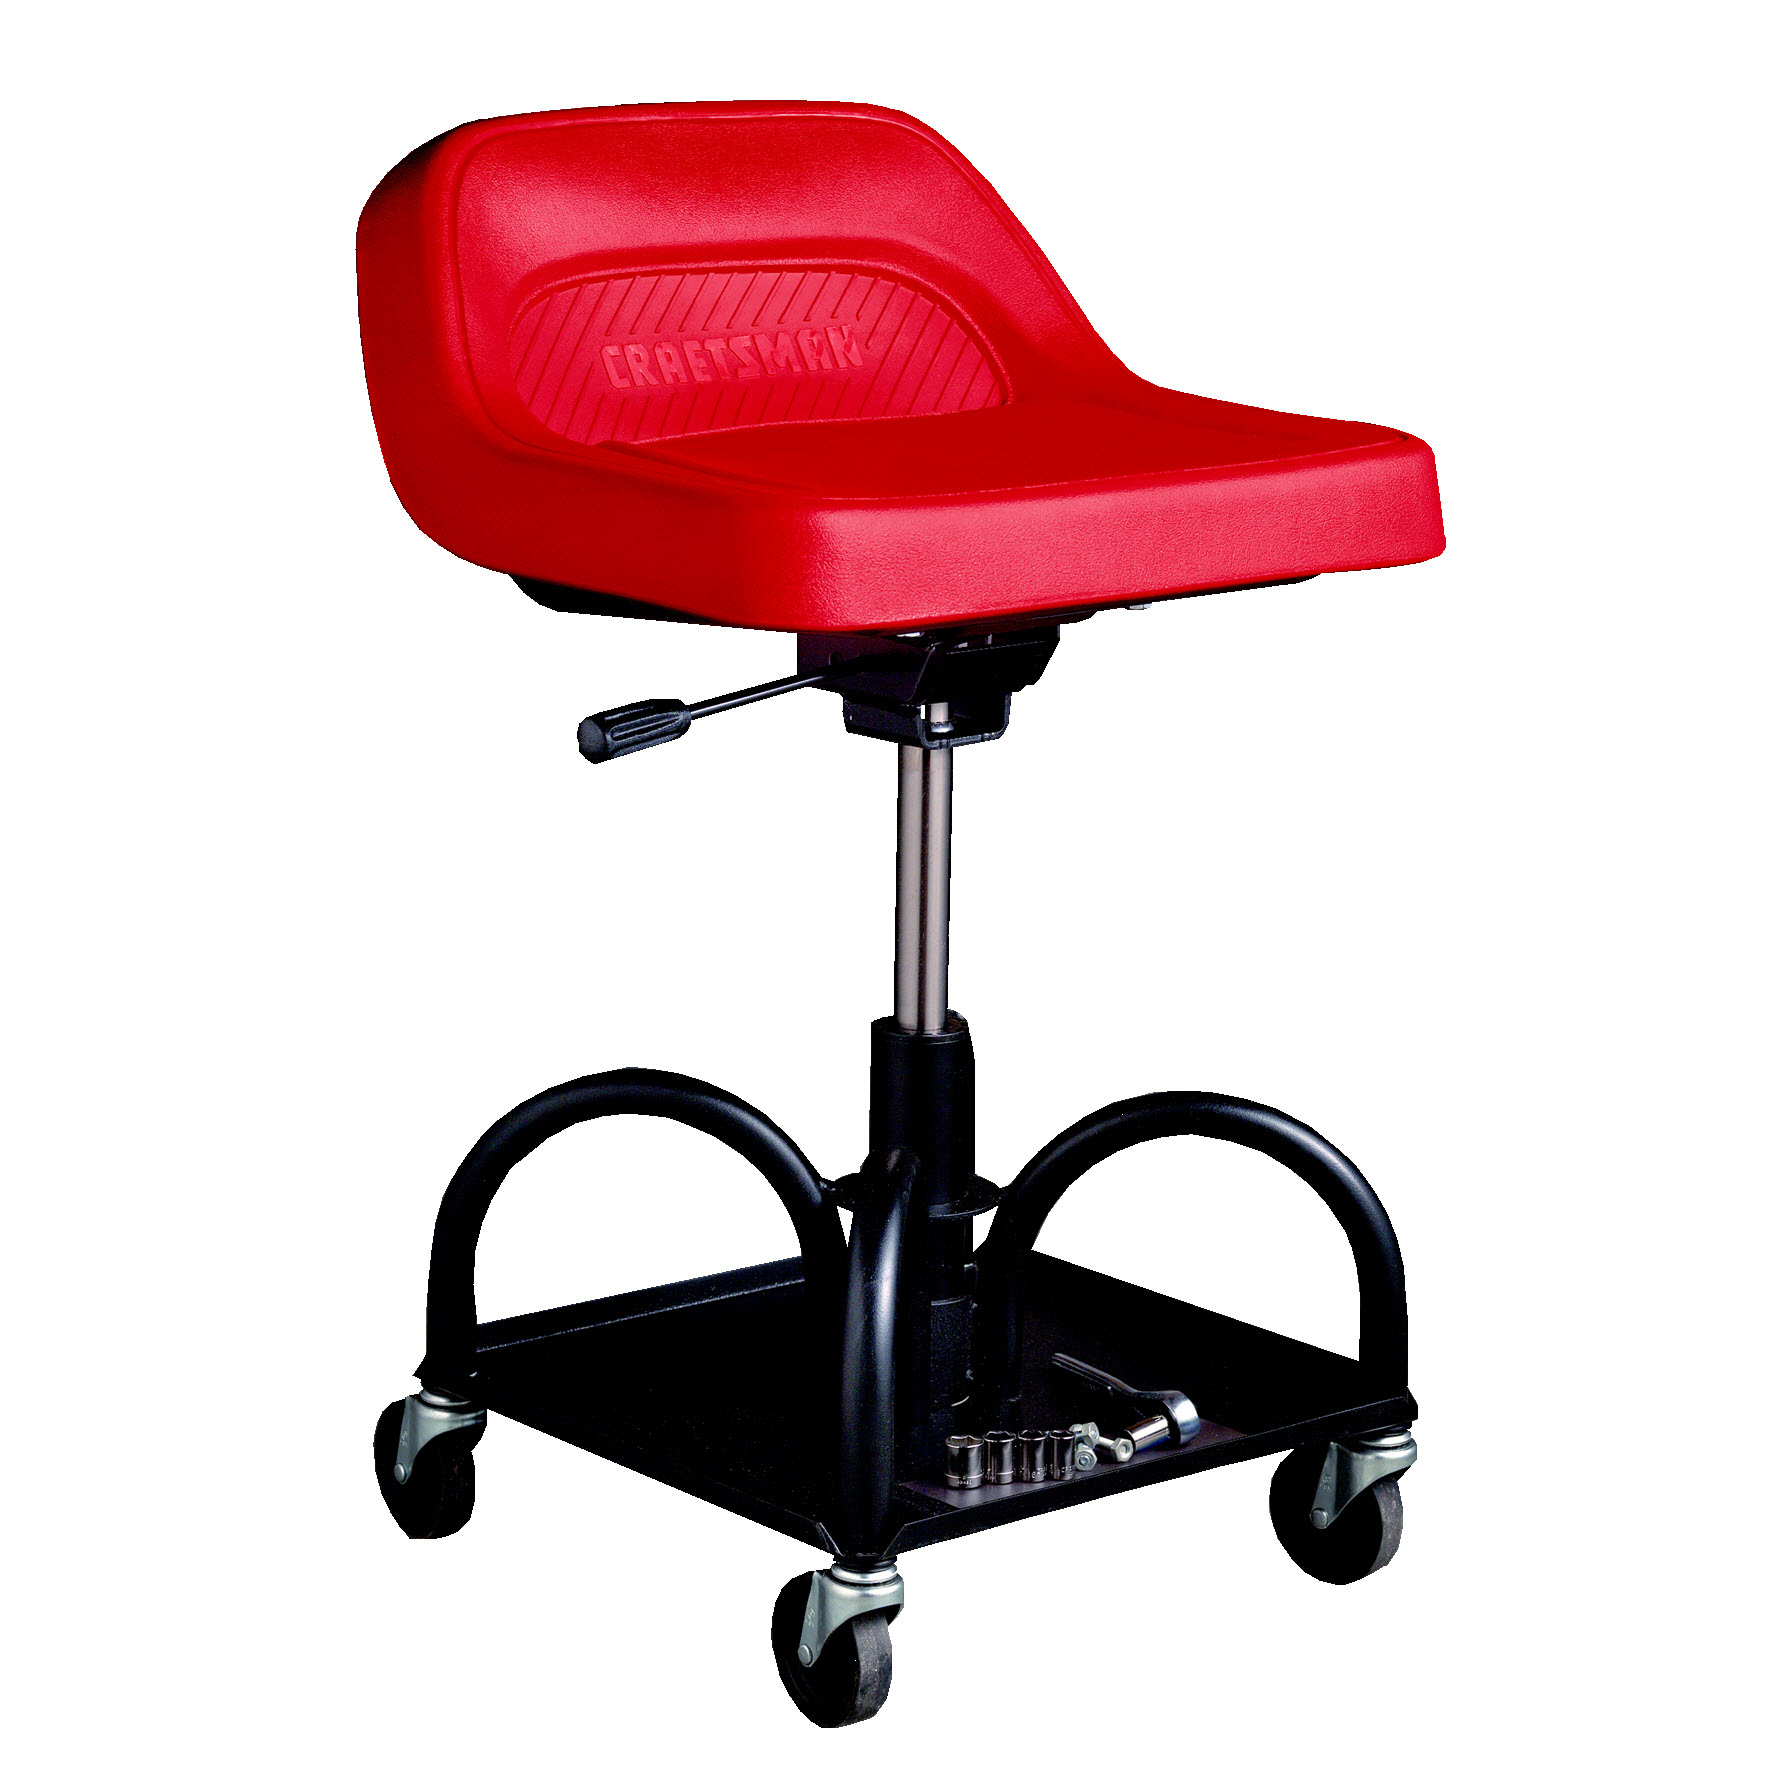 rolling chair parts children s upholstered rocking creeper seat mechanics adjustable keep at sears